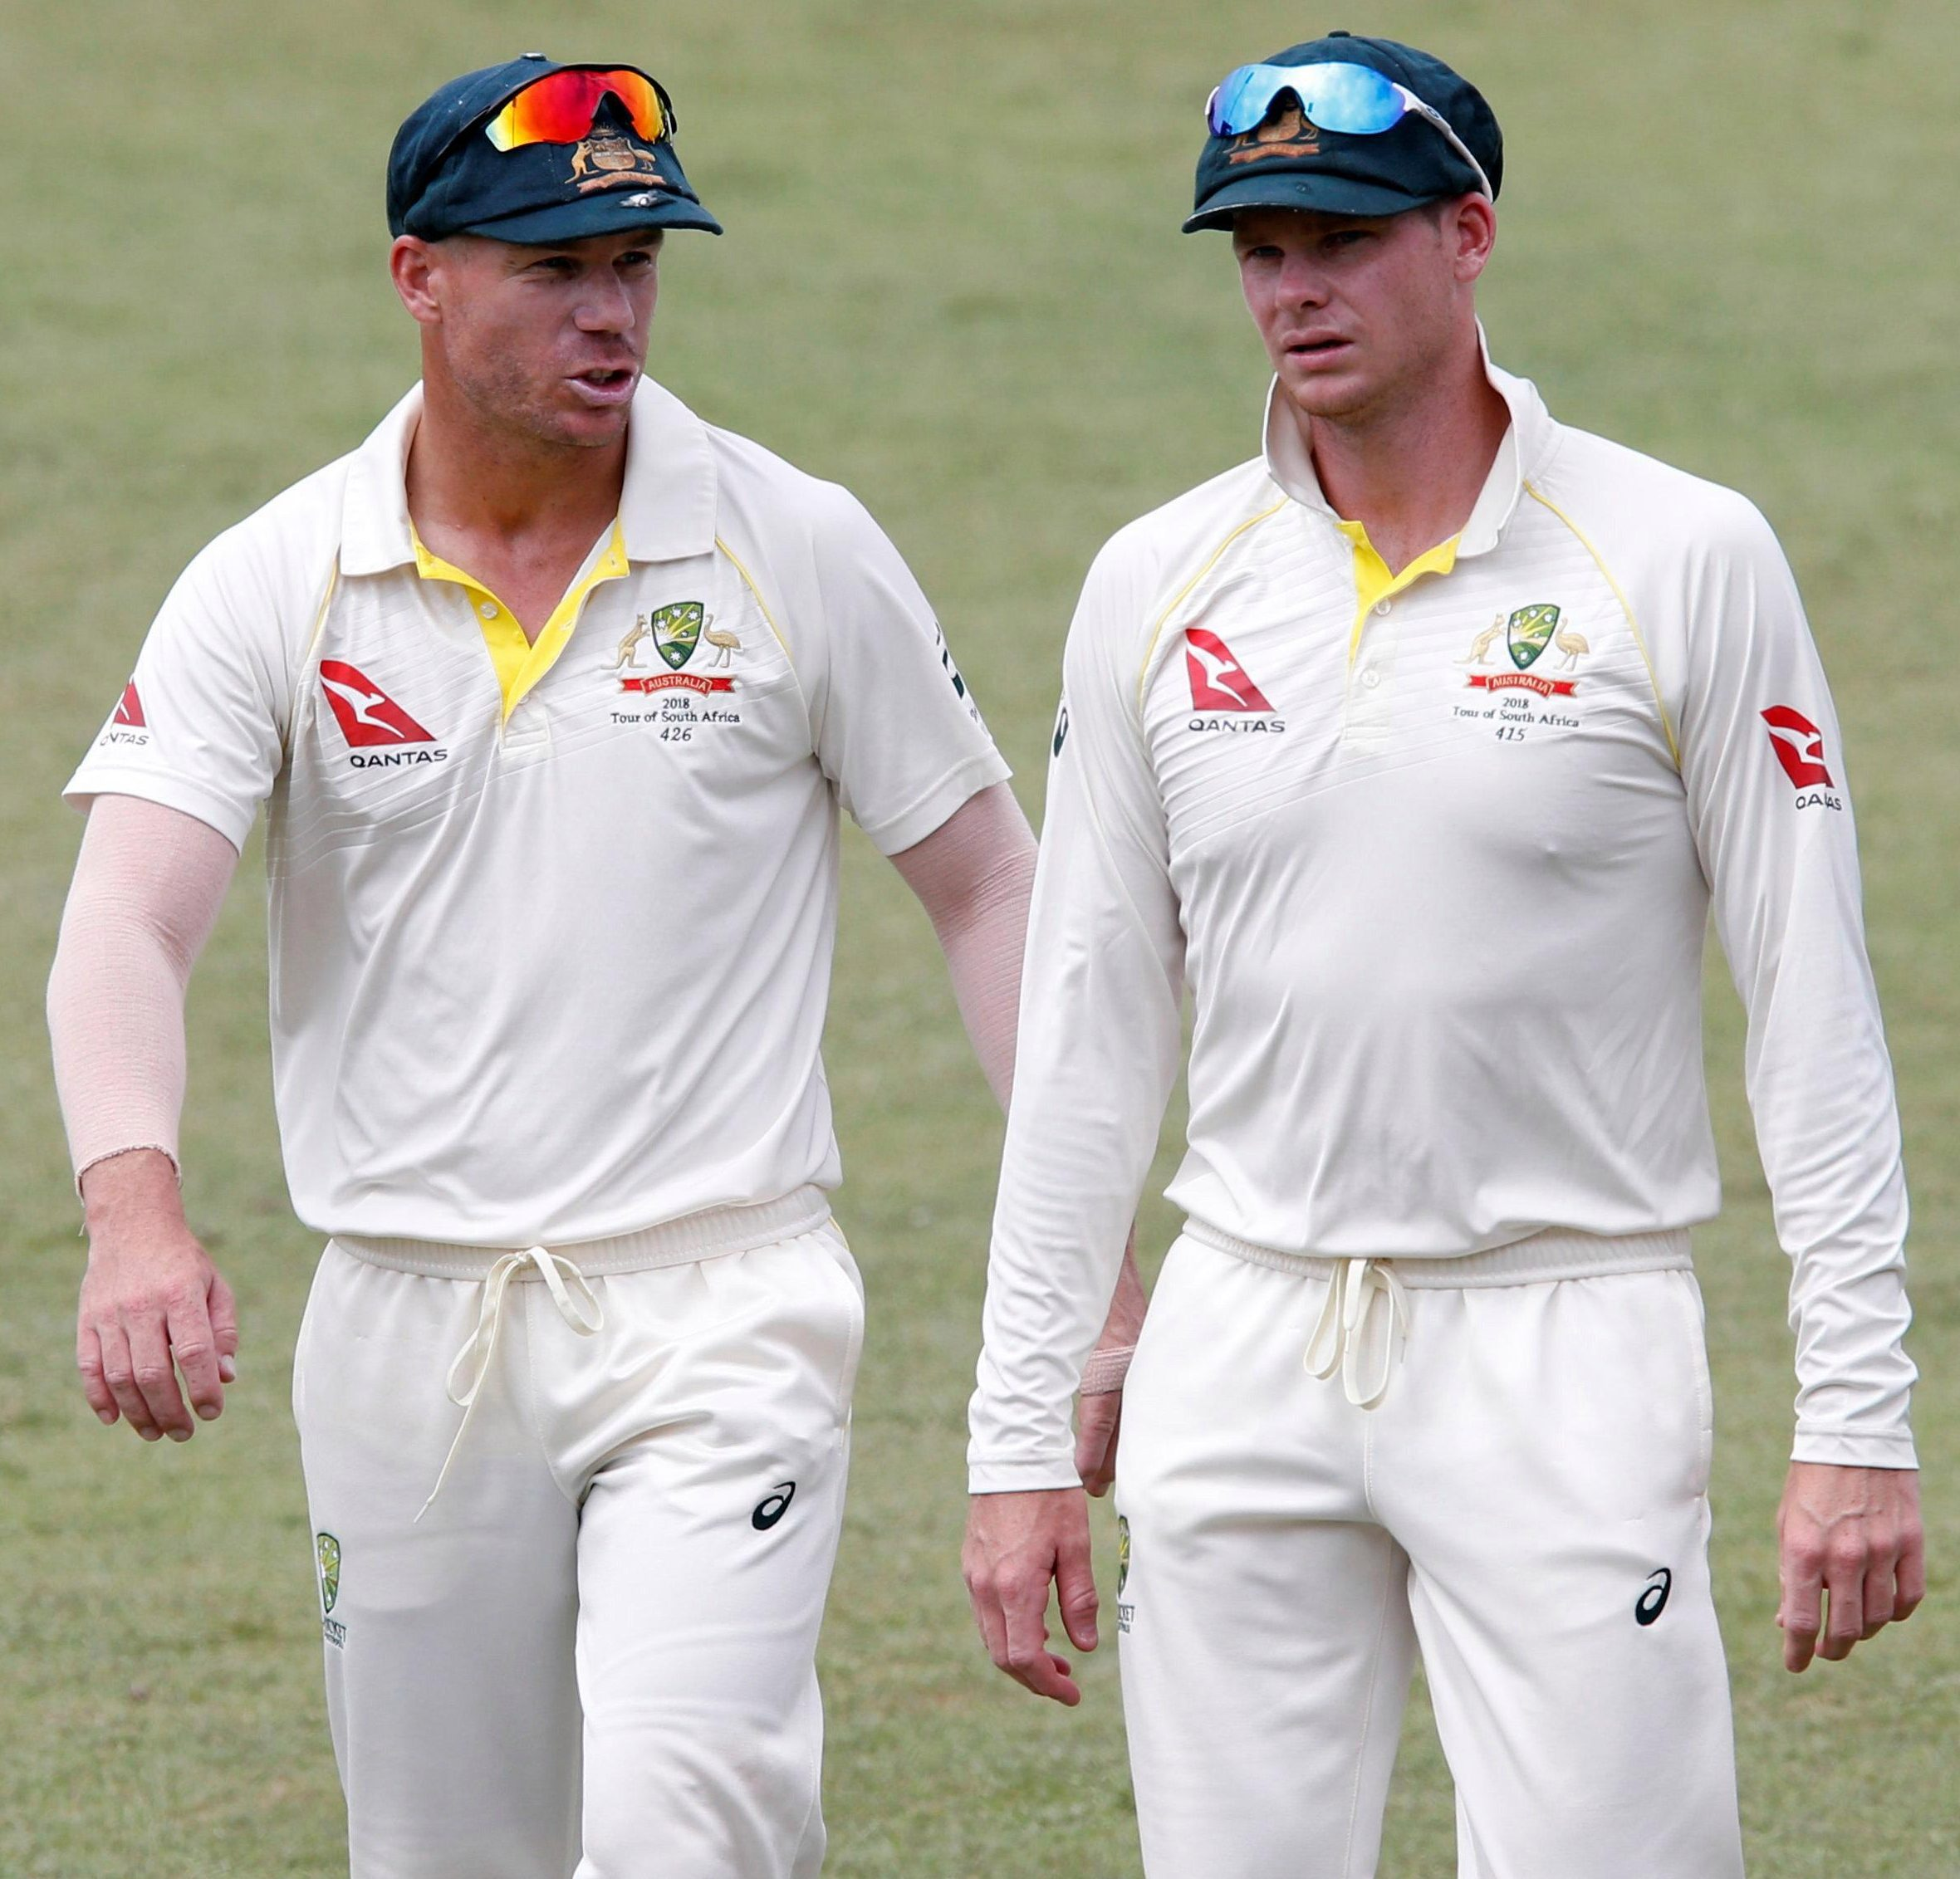 Earlier, Warner and Smith left the field together